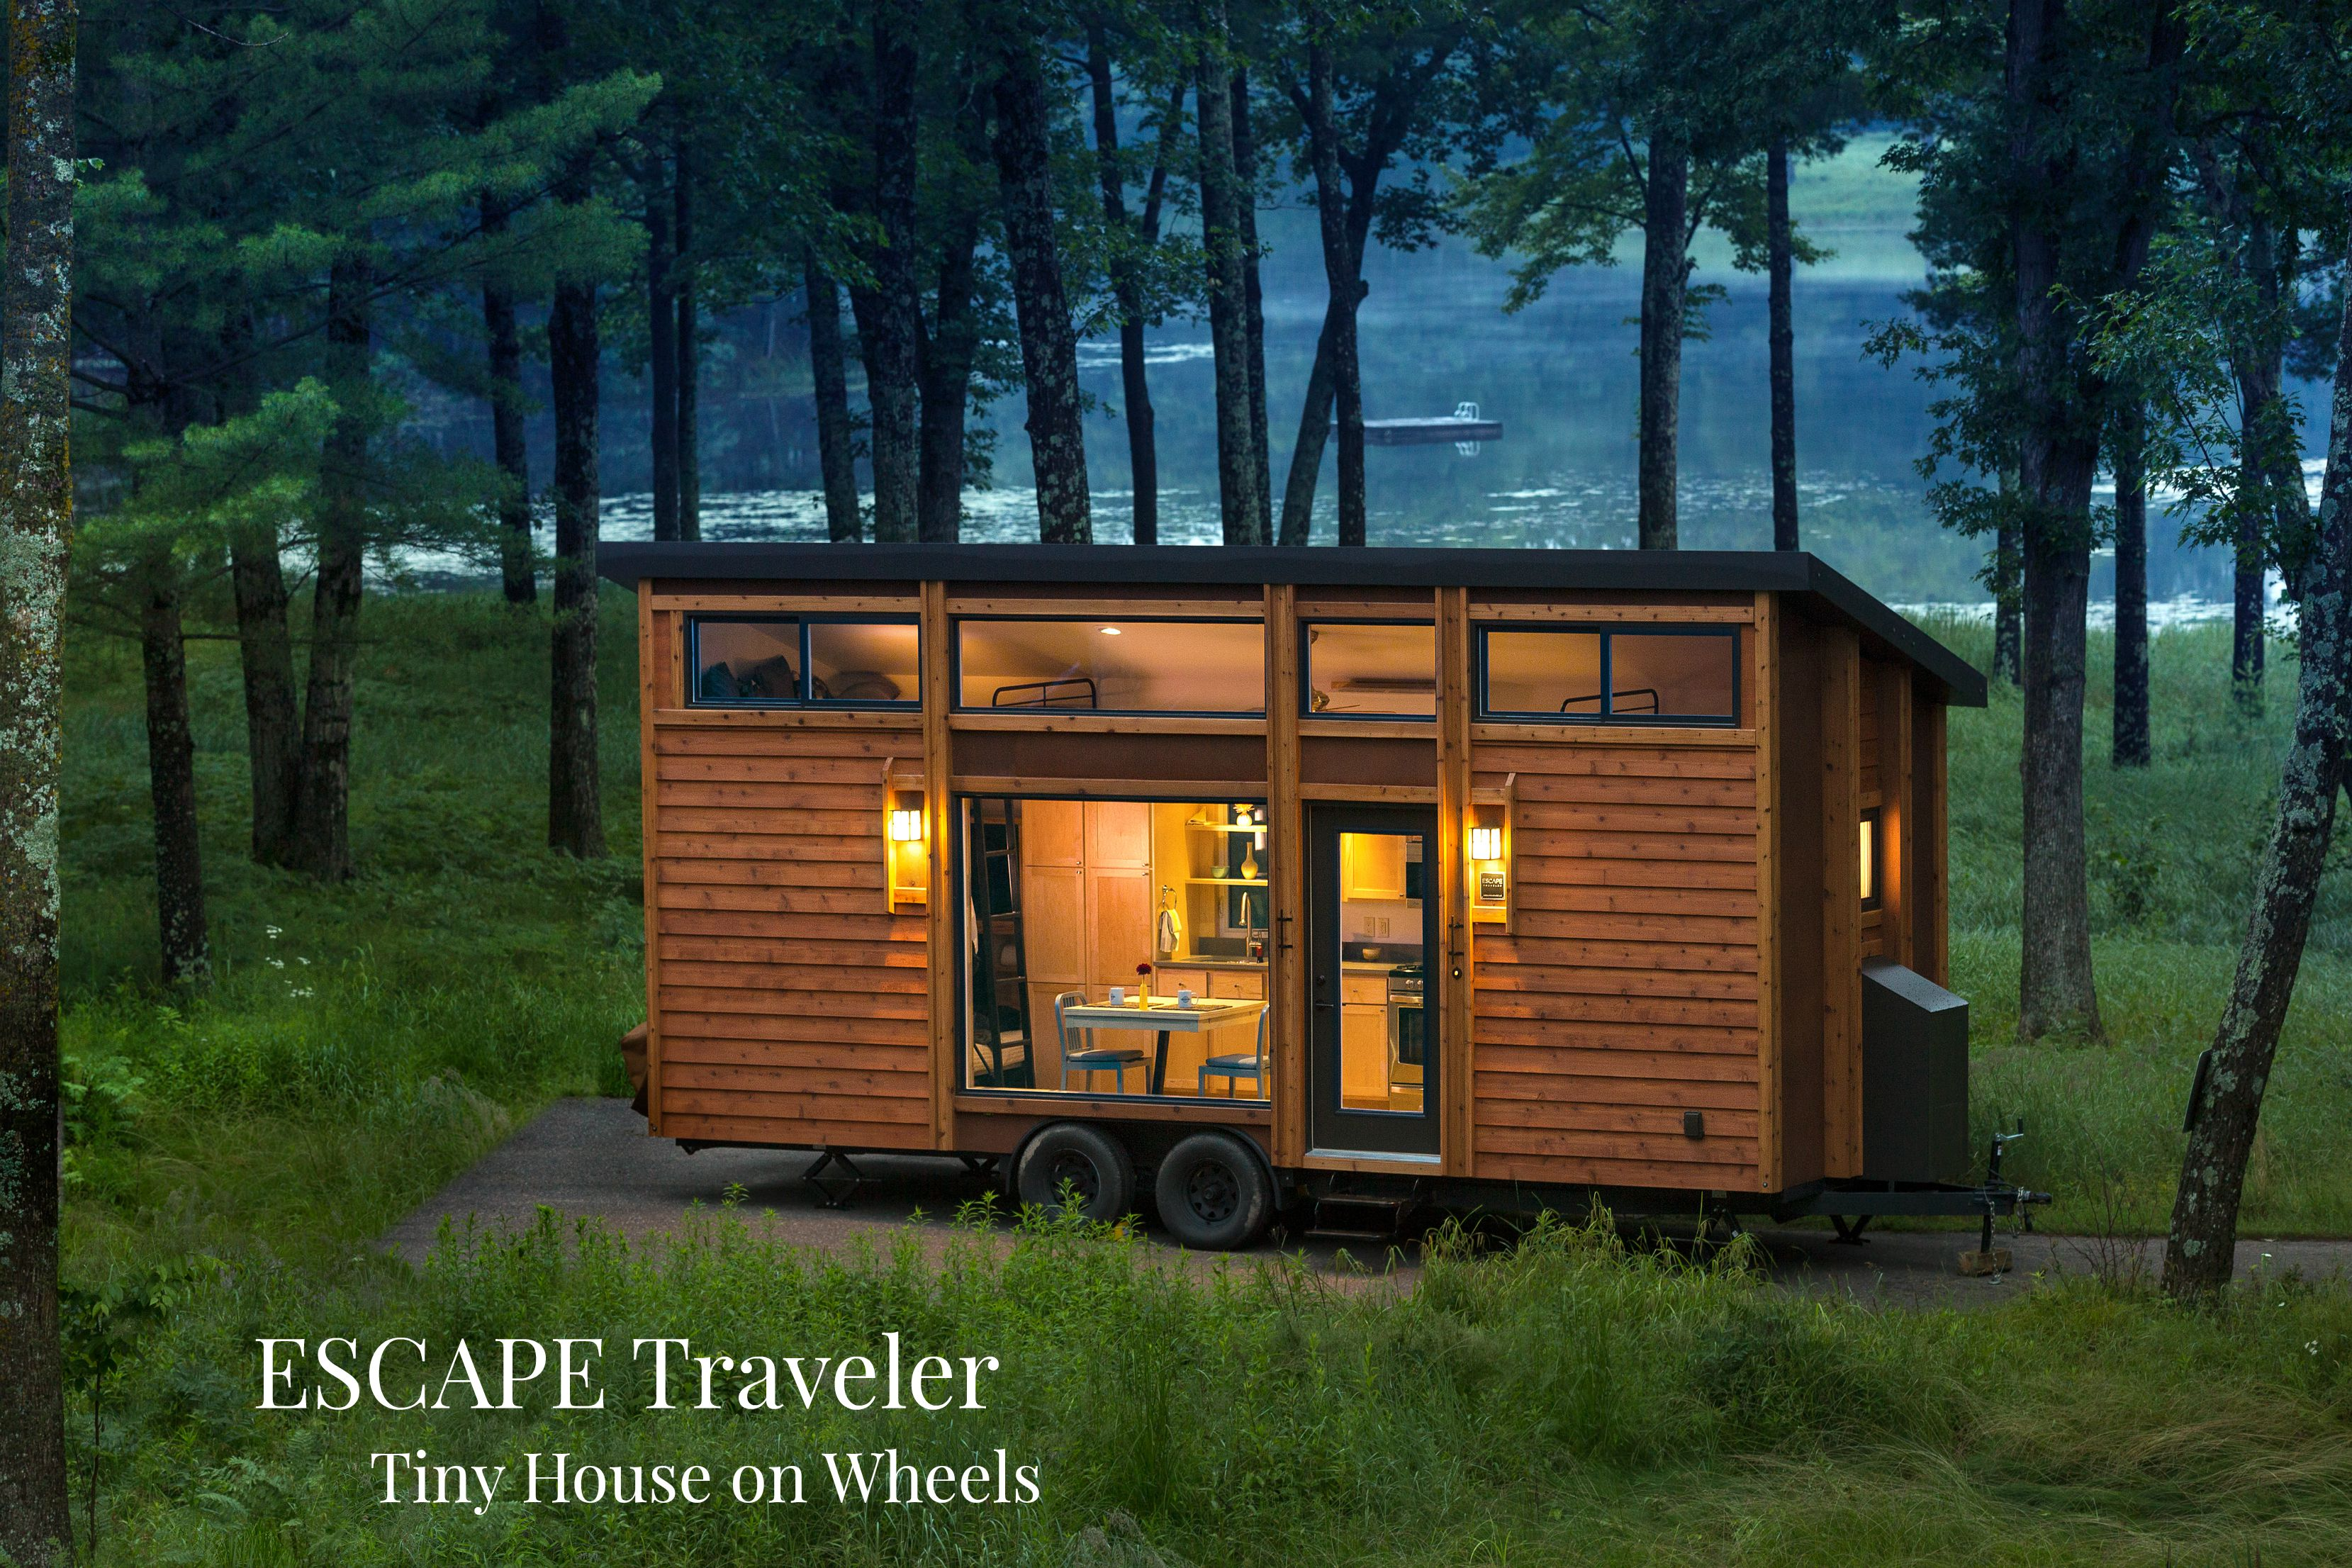 escape traveler the tiny house vacation wonder on wheels - House On Wheels